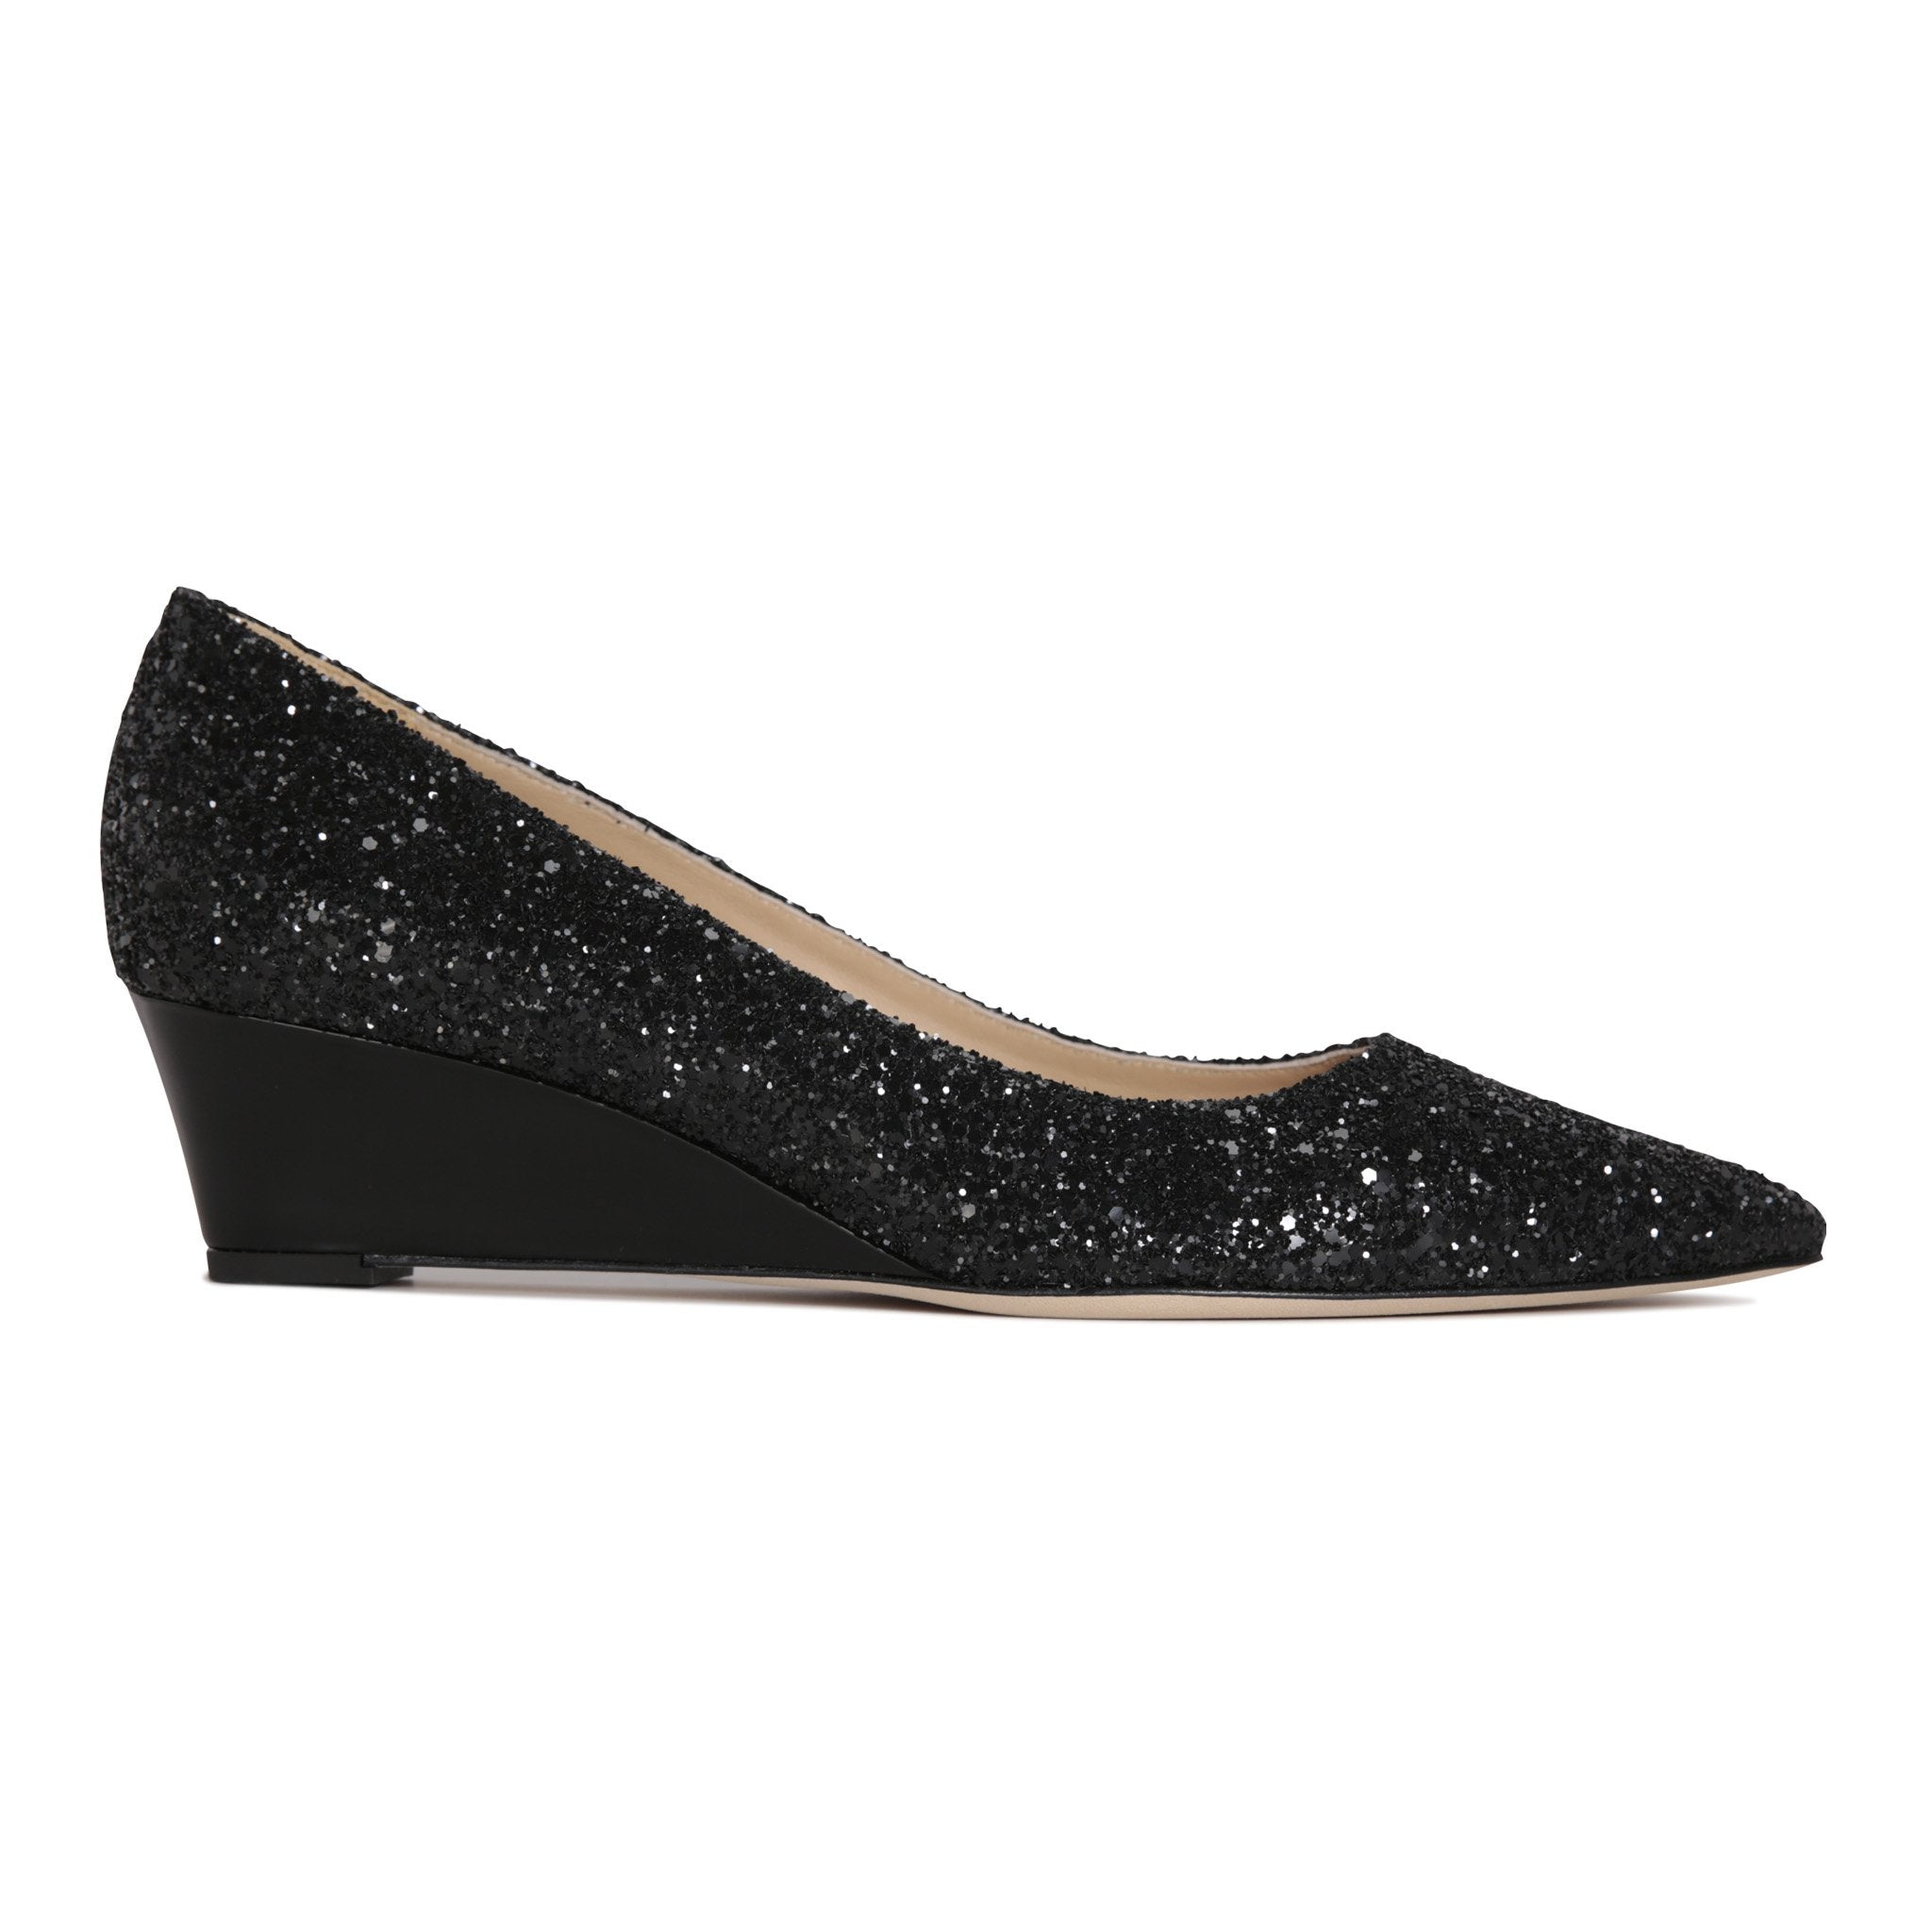 TRENTO - Glitter Nero + Patent Nero, VIAJIYU - Women's Hand Made Sustainable Luxury Shoes. Made in Italy. Made to Order.